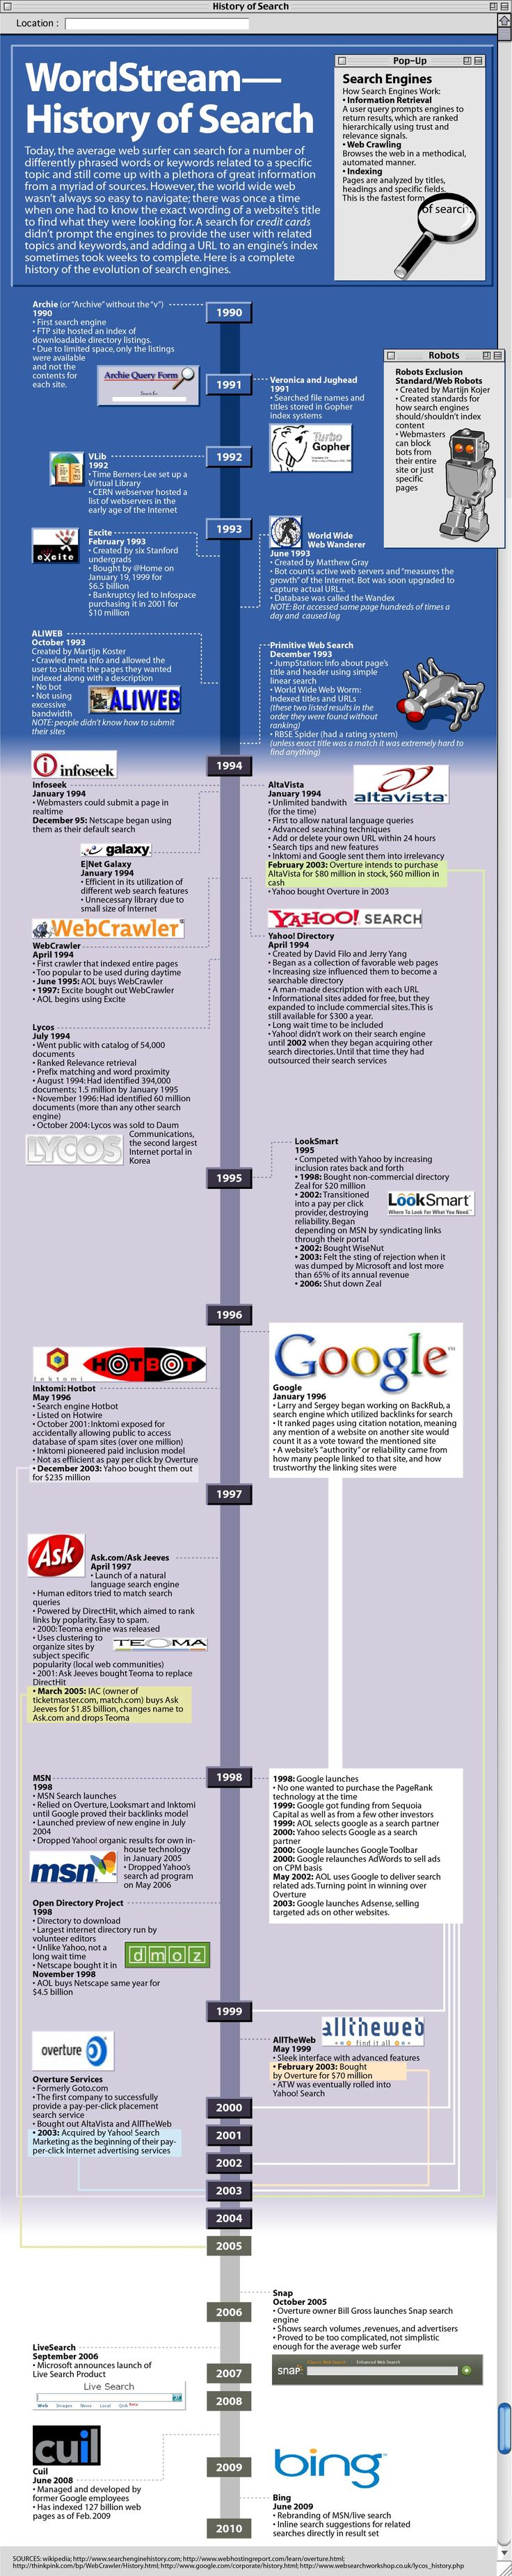 History of Search.